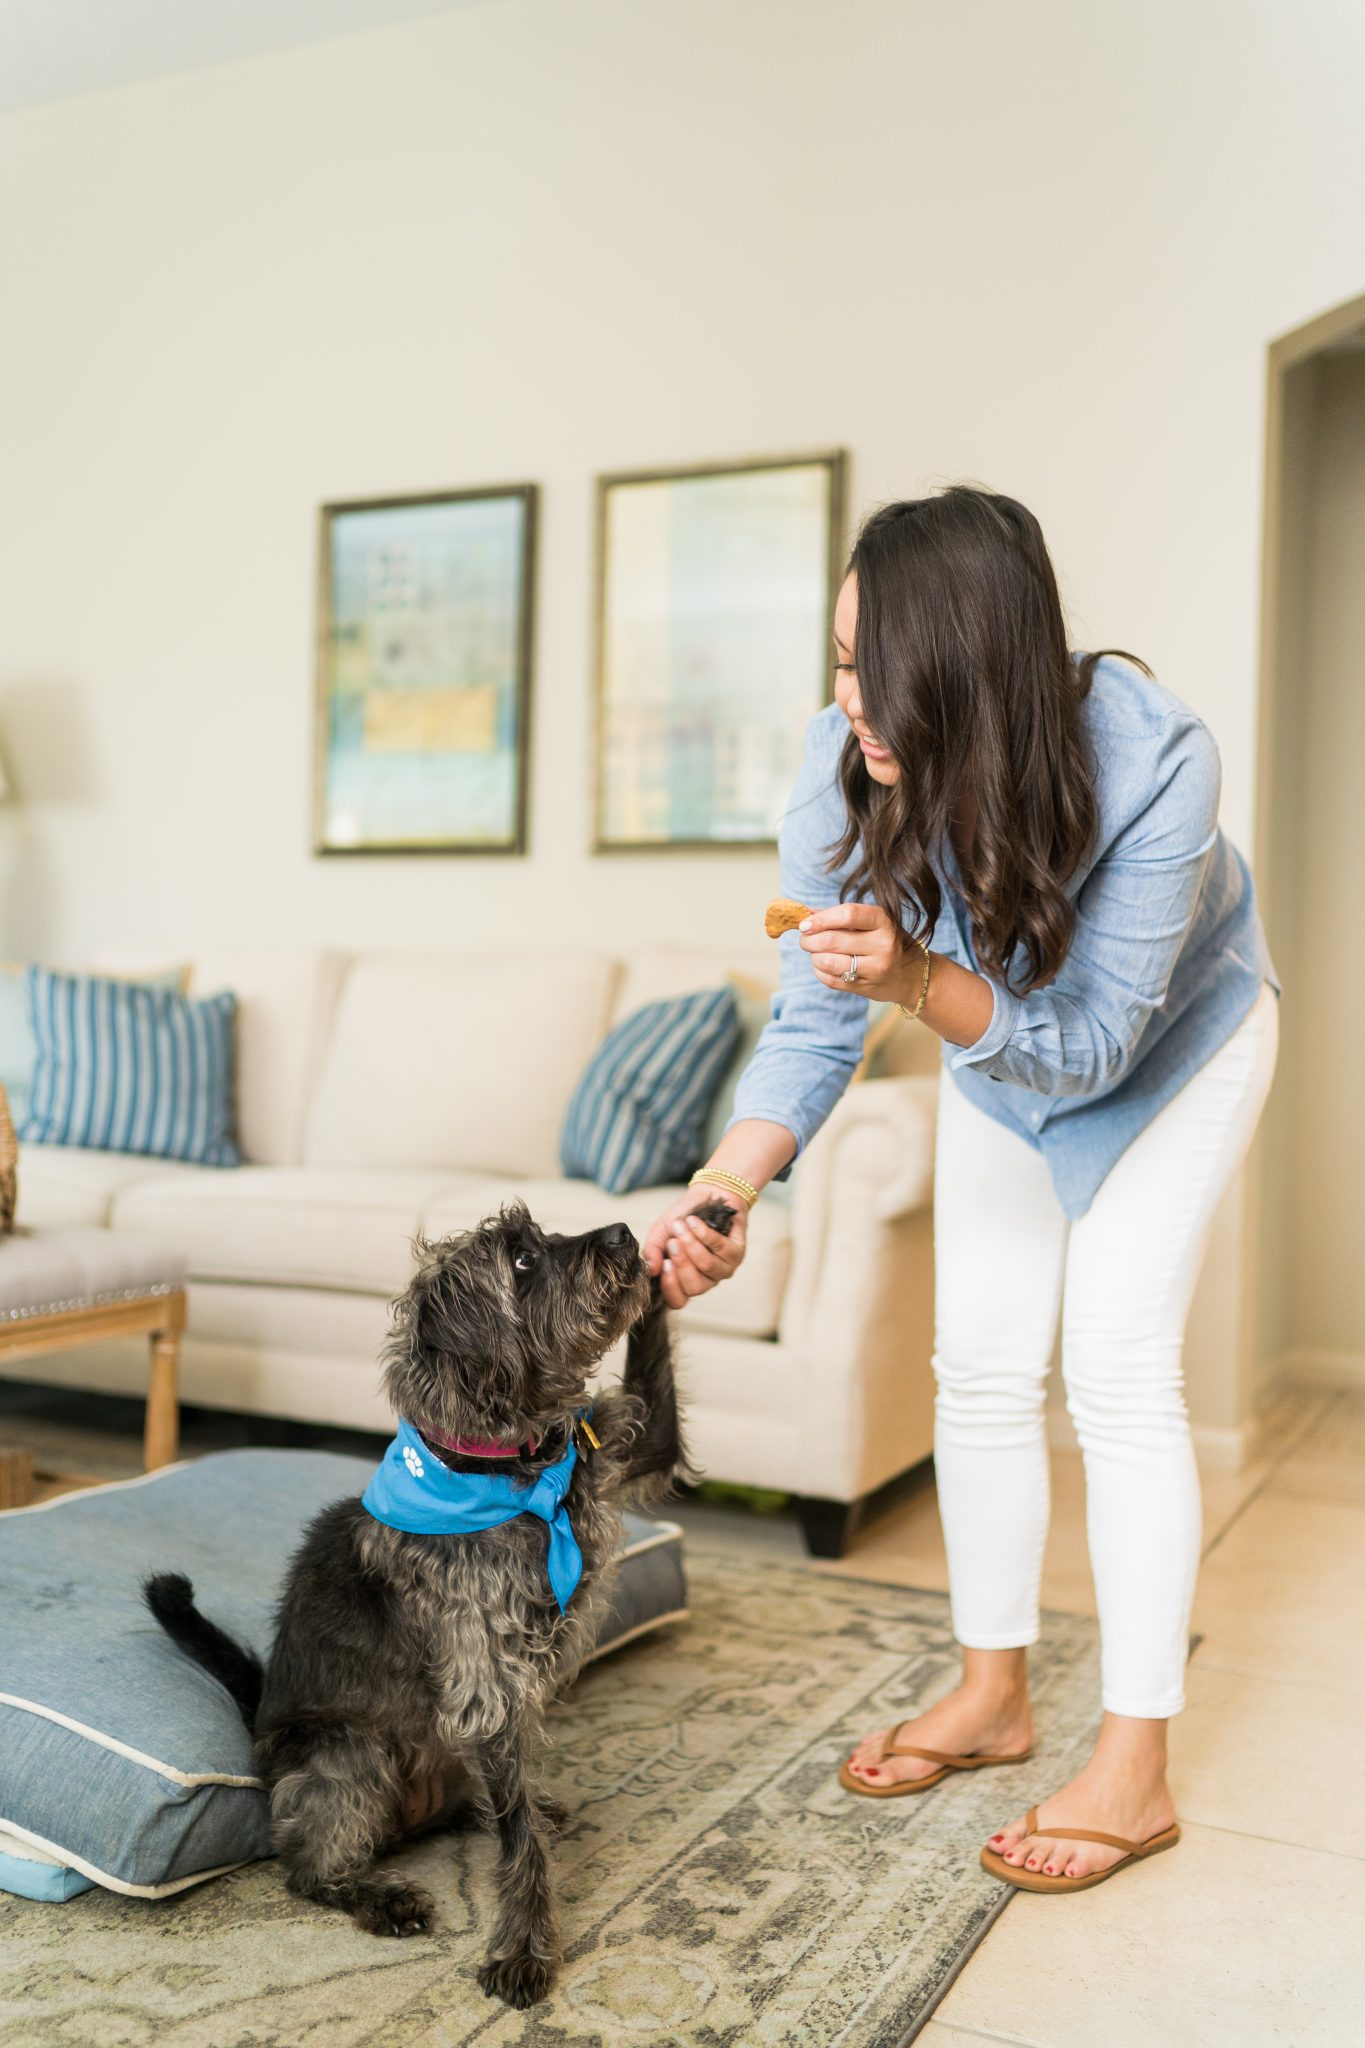 Working at home with your furry friend